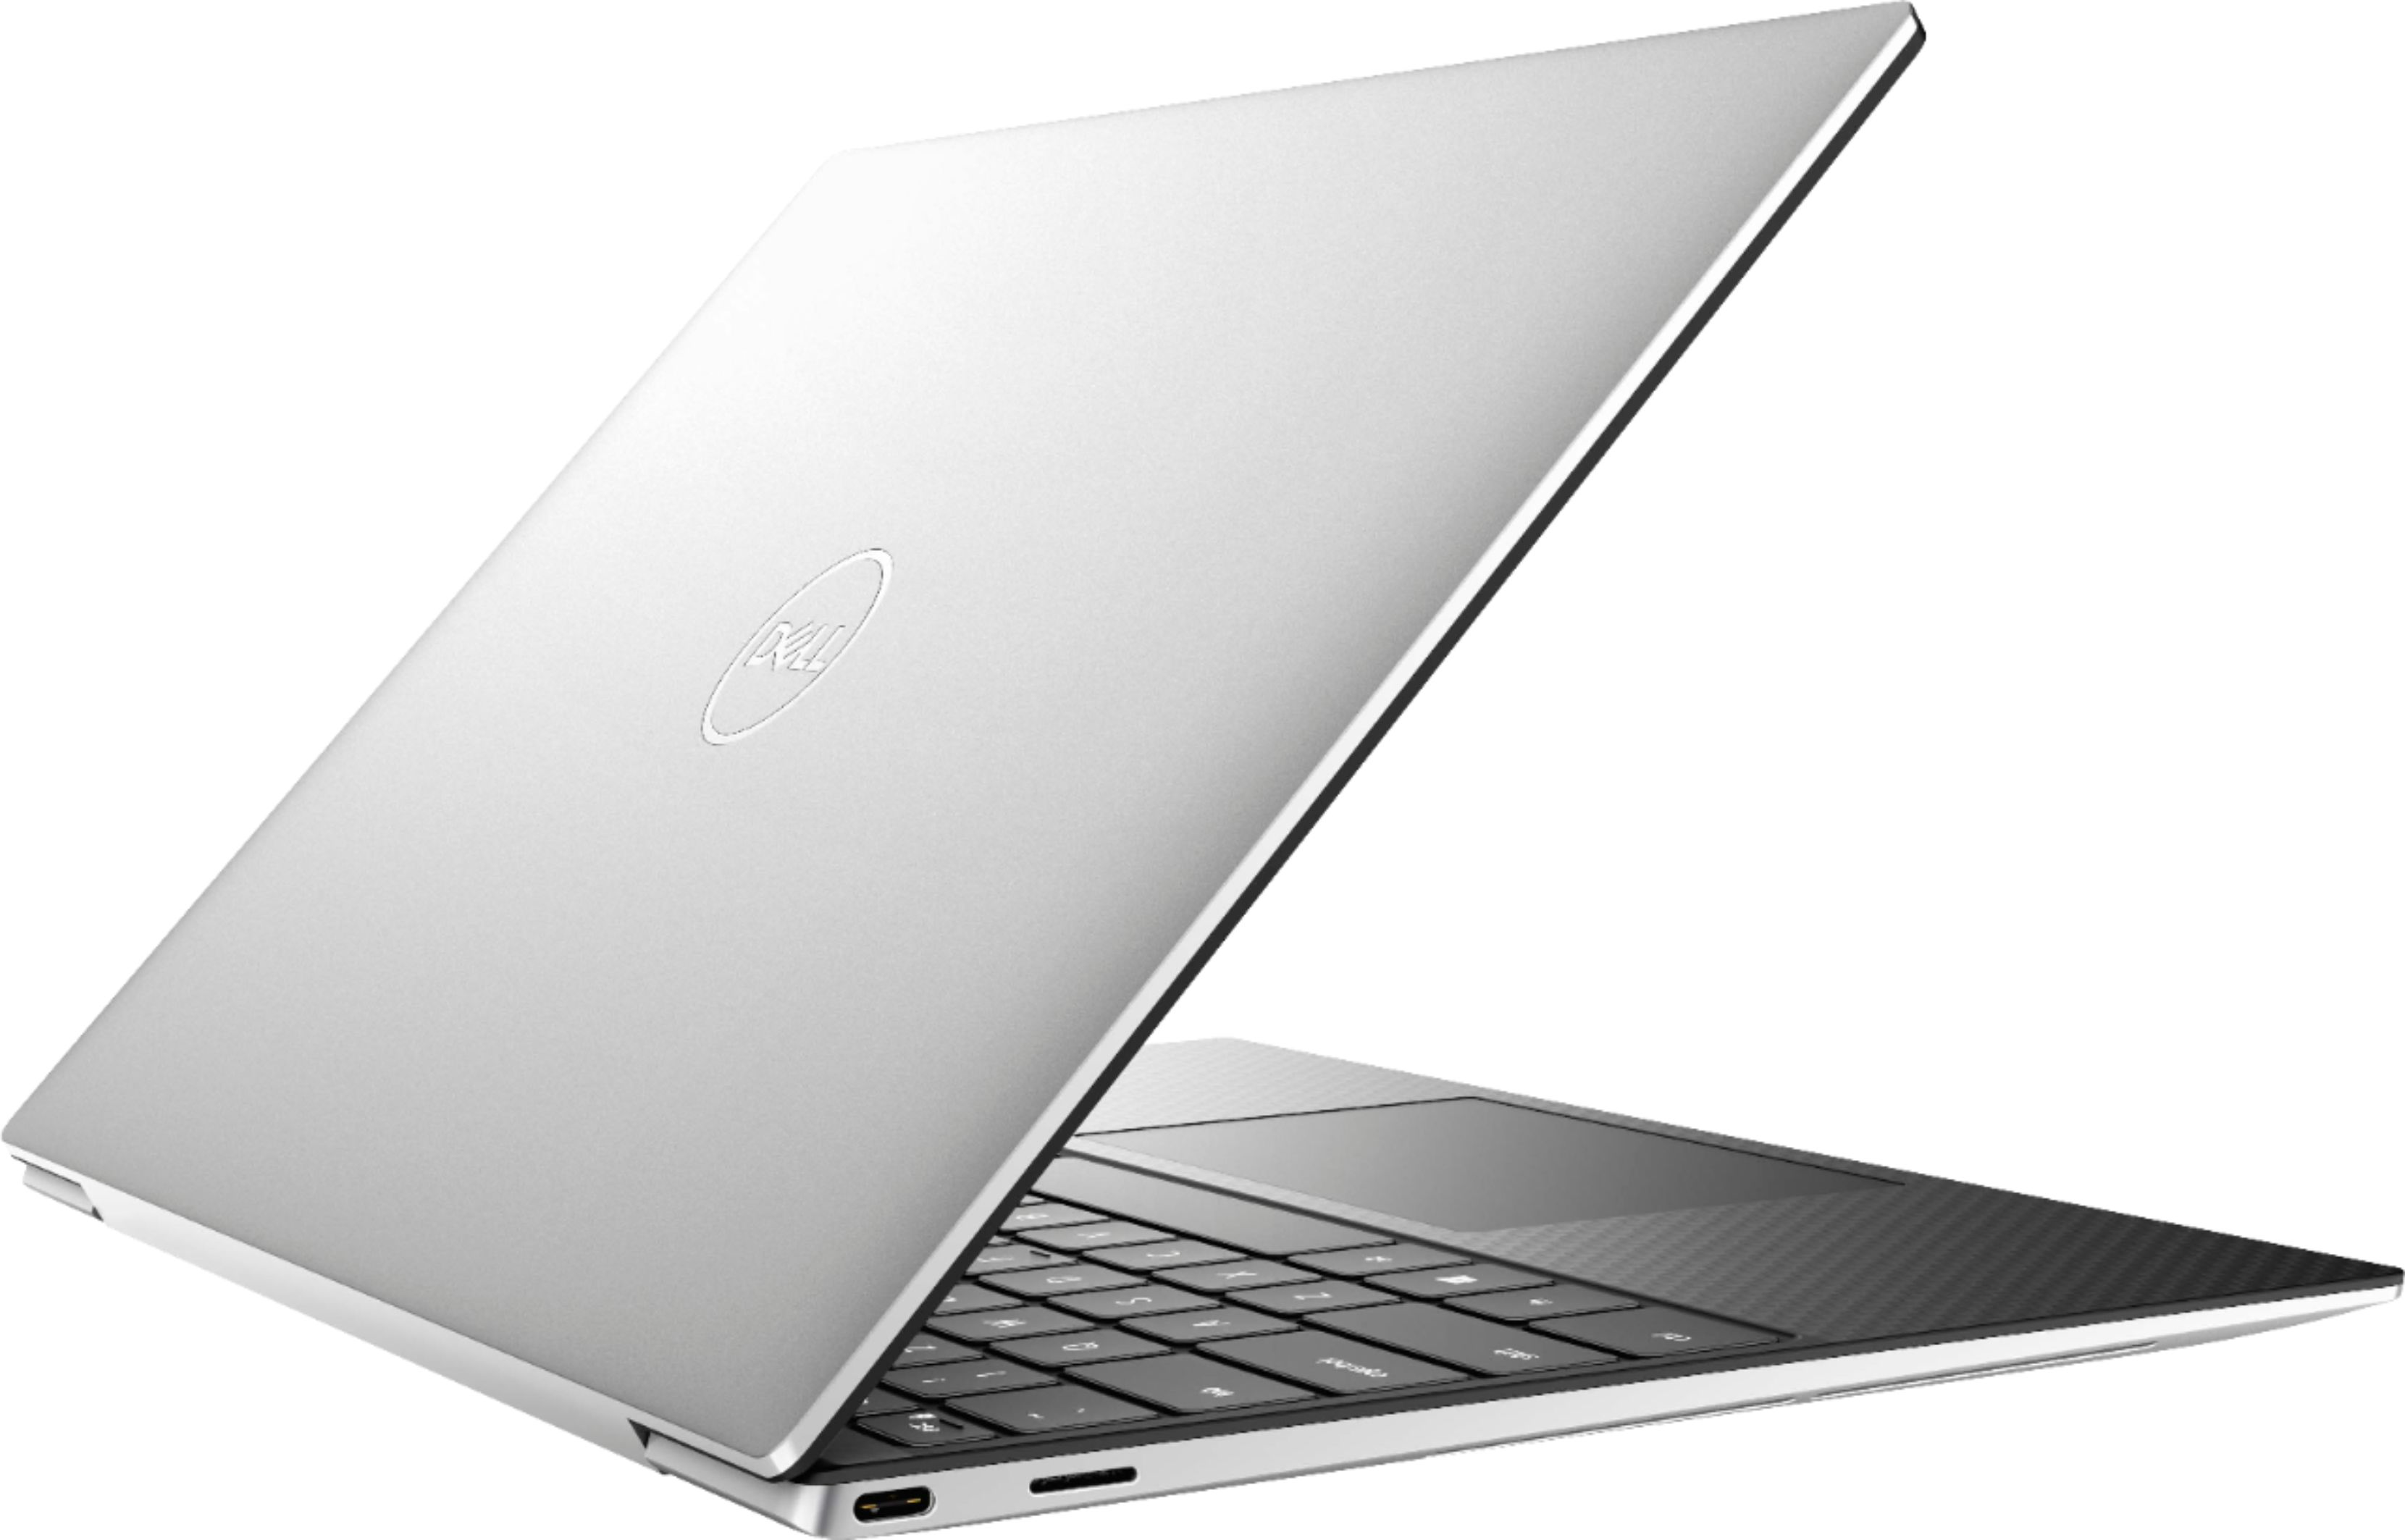 """Alt View Zoom 1. Dell - XPS 13.4"""" FHD+ Touch Laptop - Engineered for Mobile Performance - Intel Core i7 - 8GB Memory - 512GB SSD - Platinum Silver."""